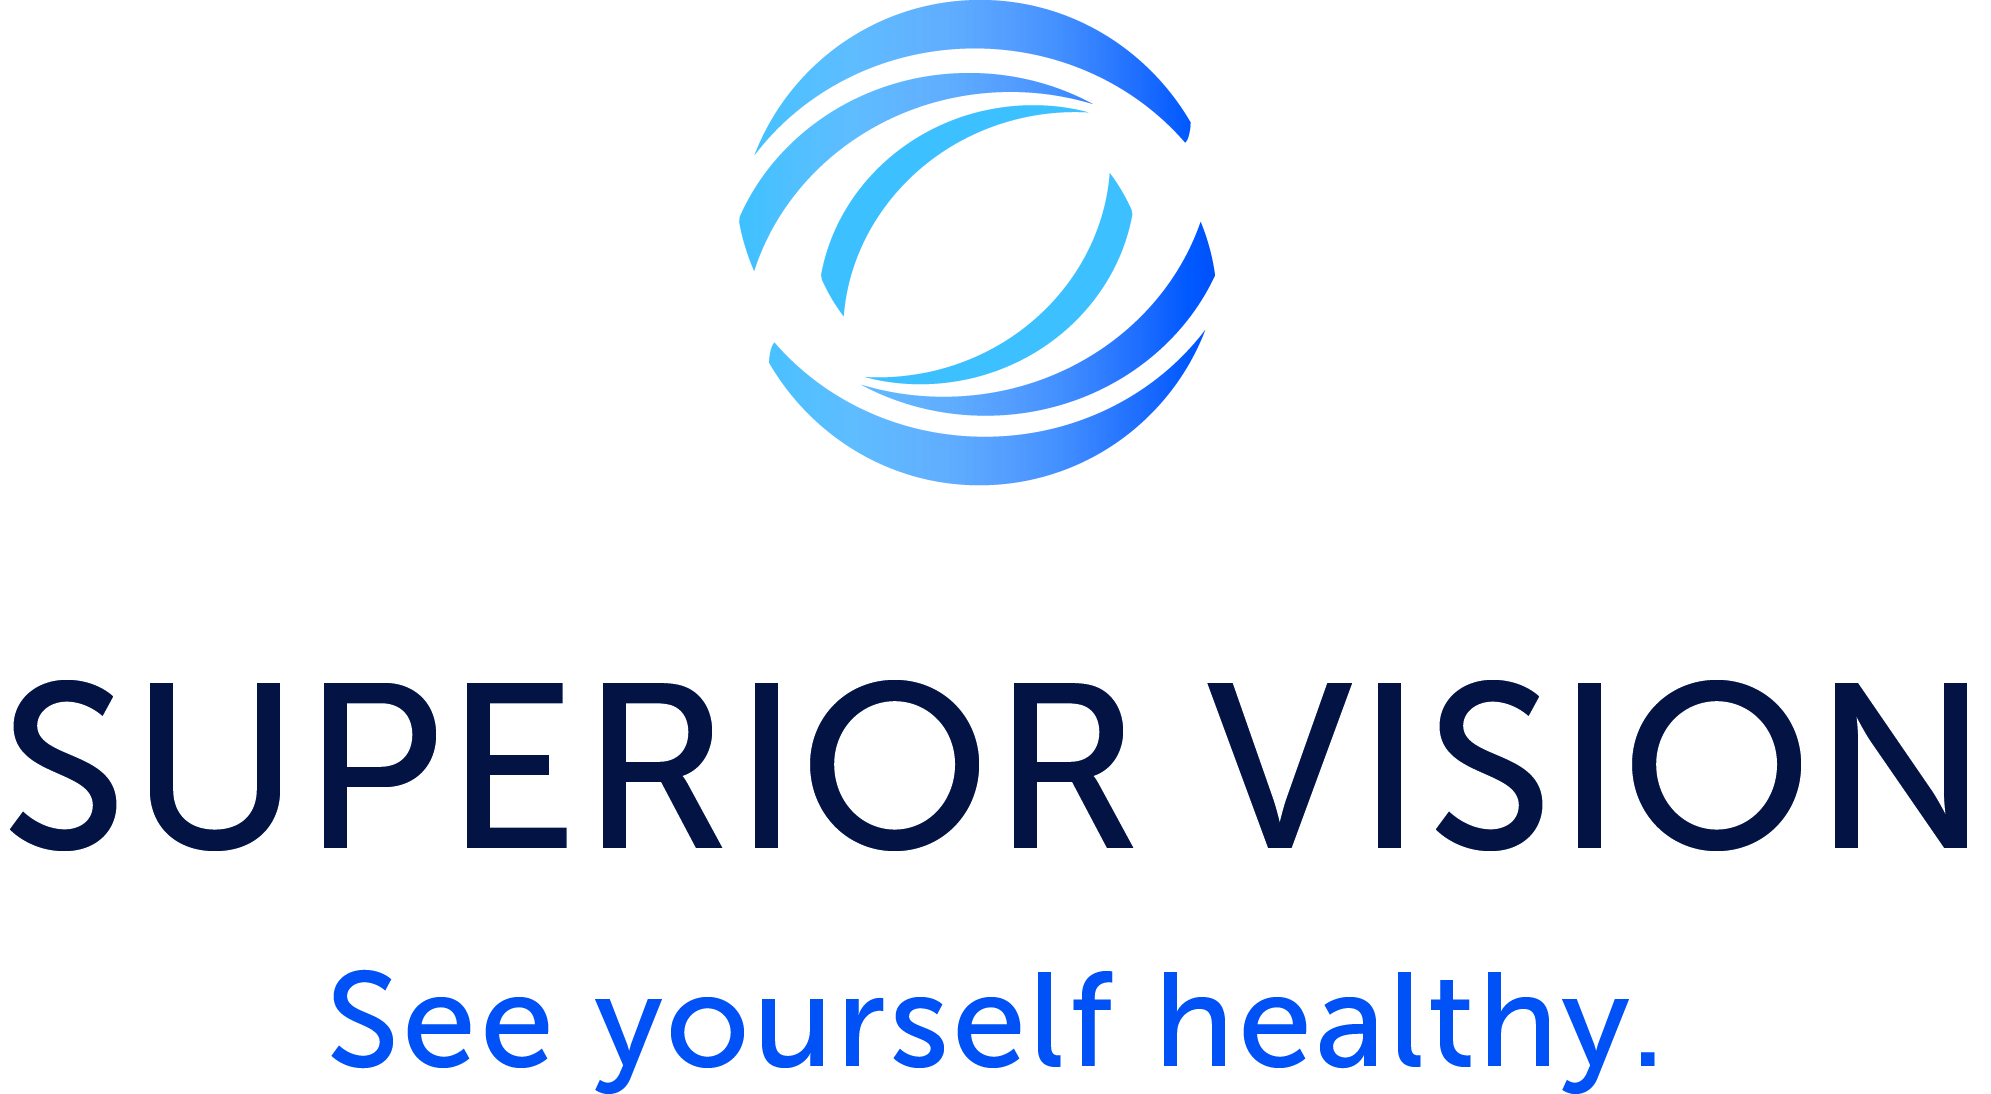 Superior Vision Launches New Brand and Visual Identity